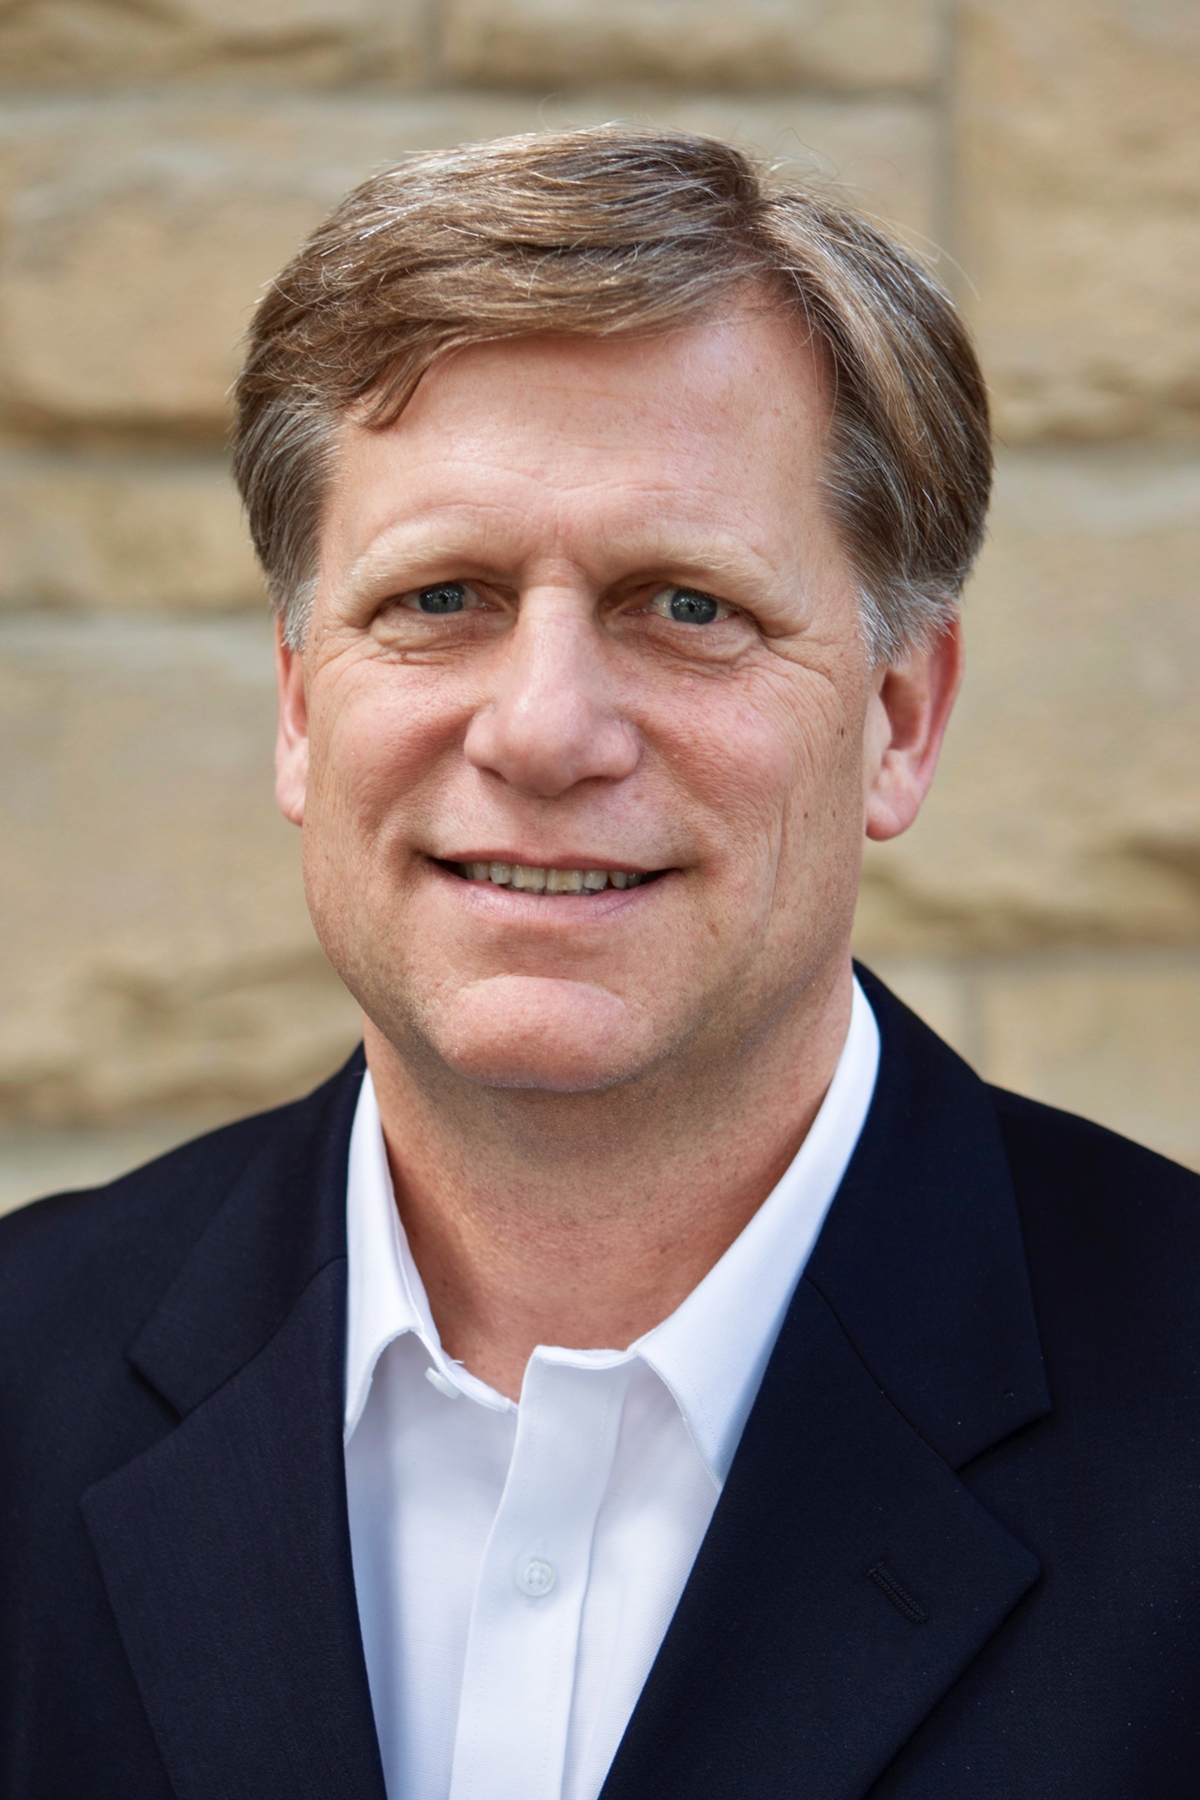 Michael McFaul Headshot